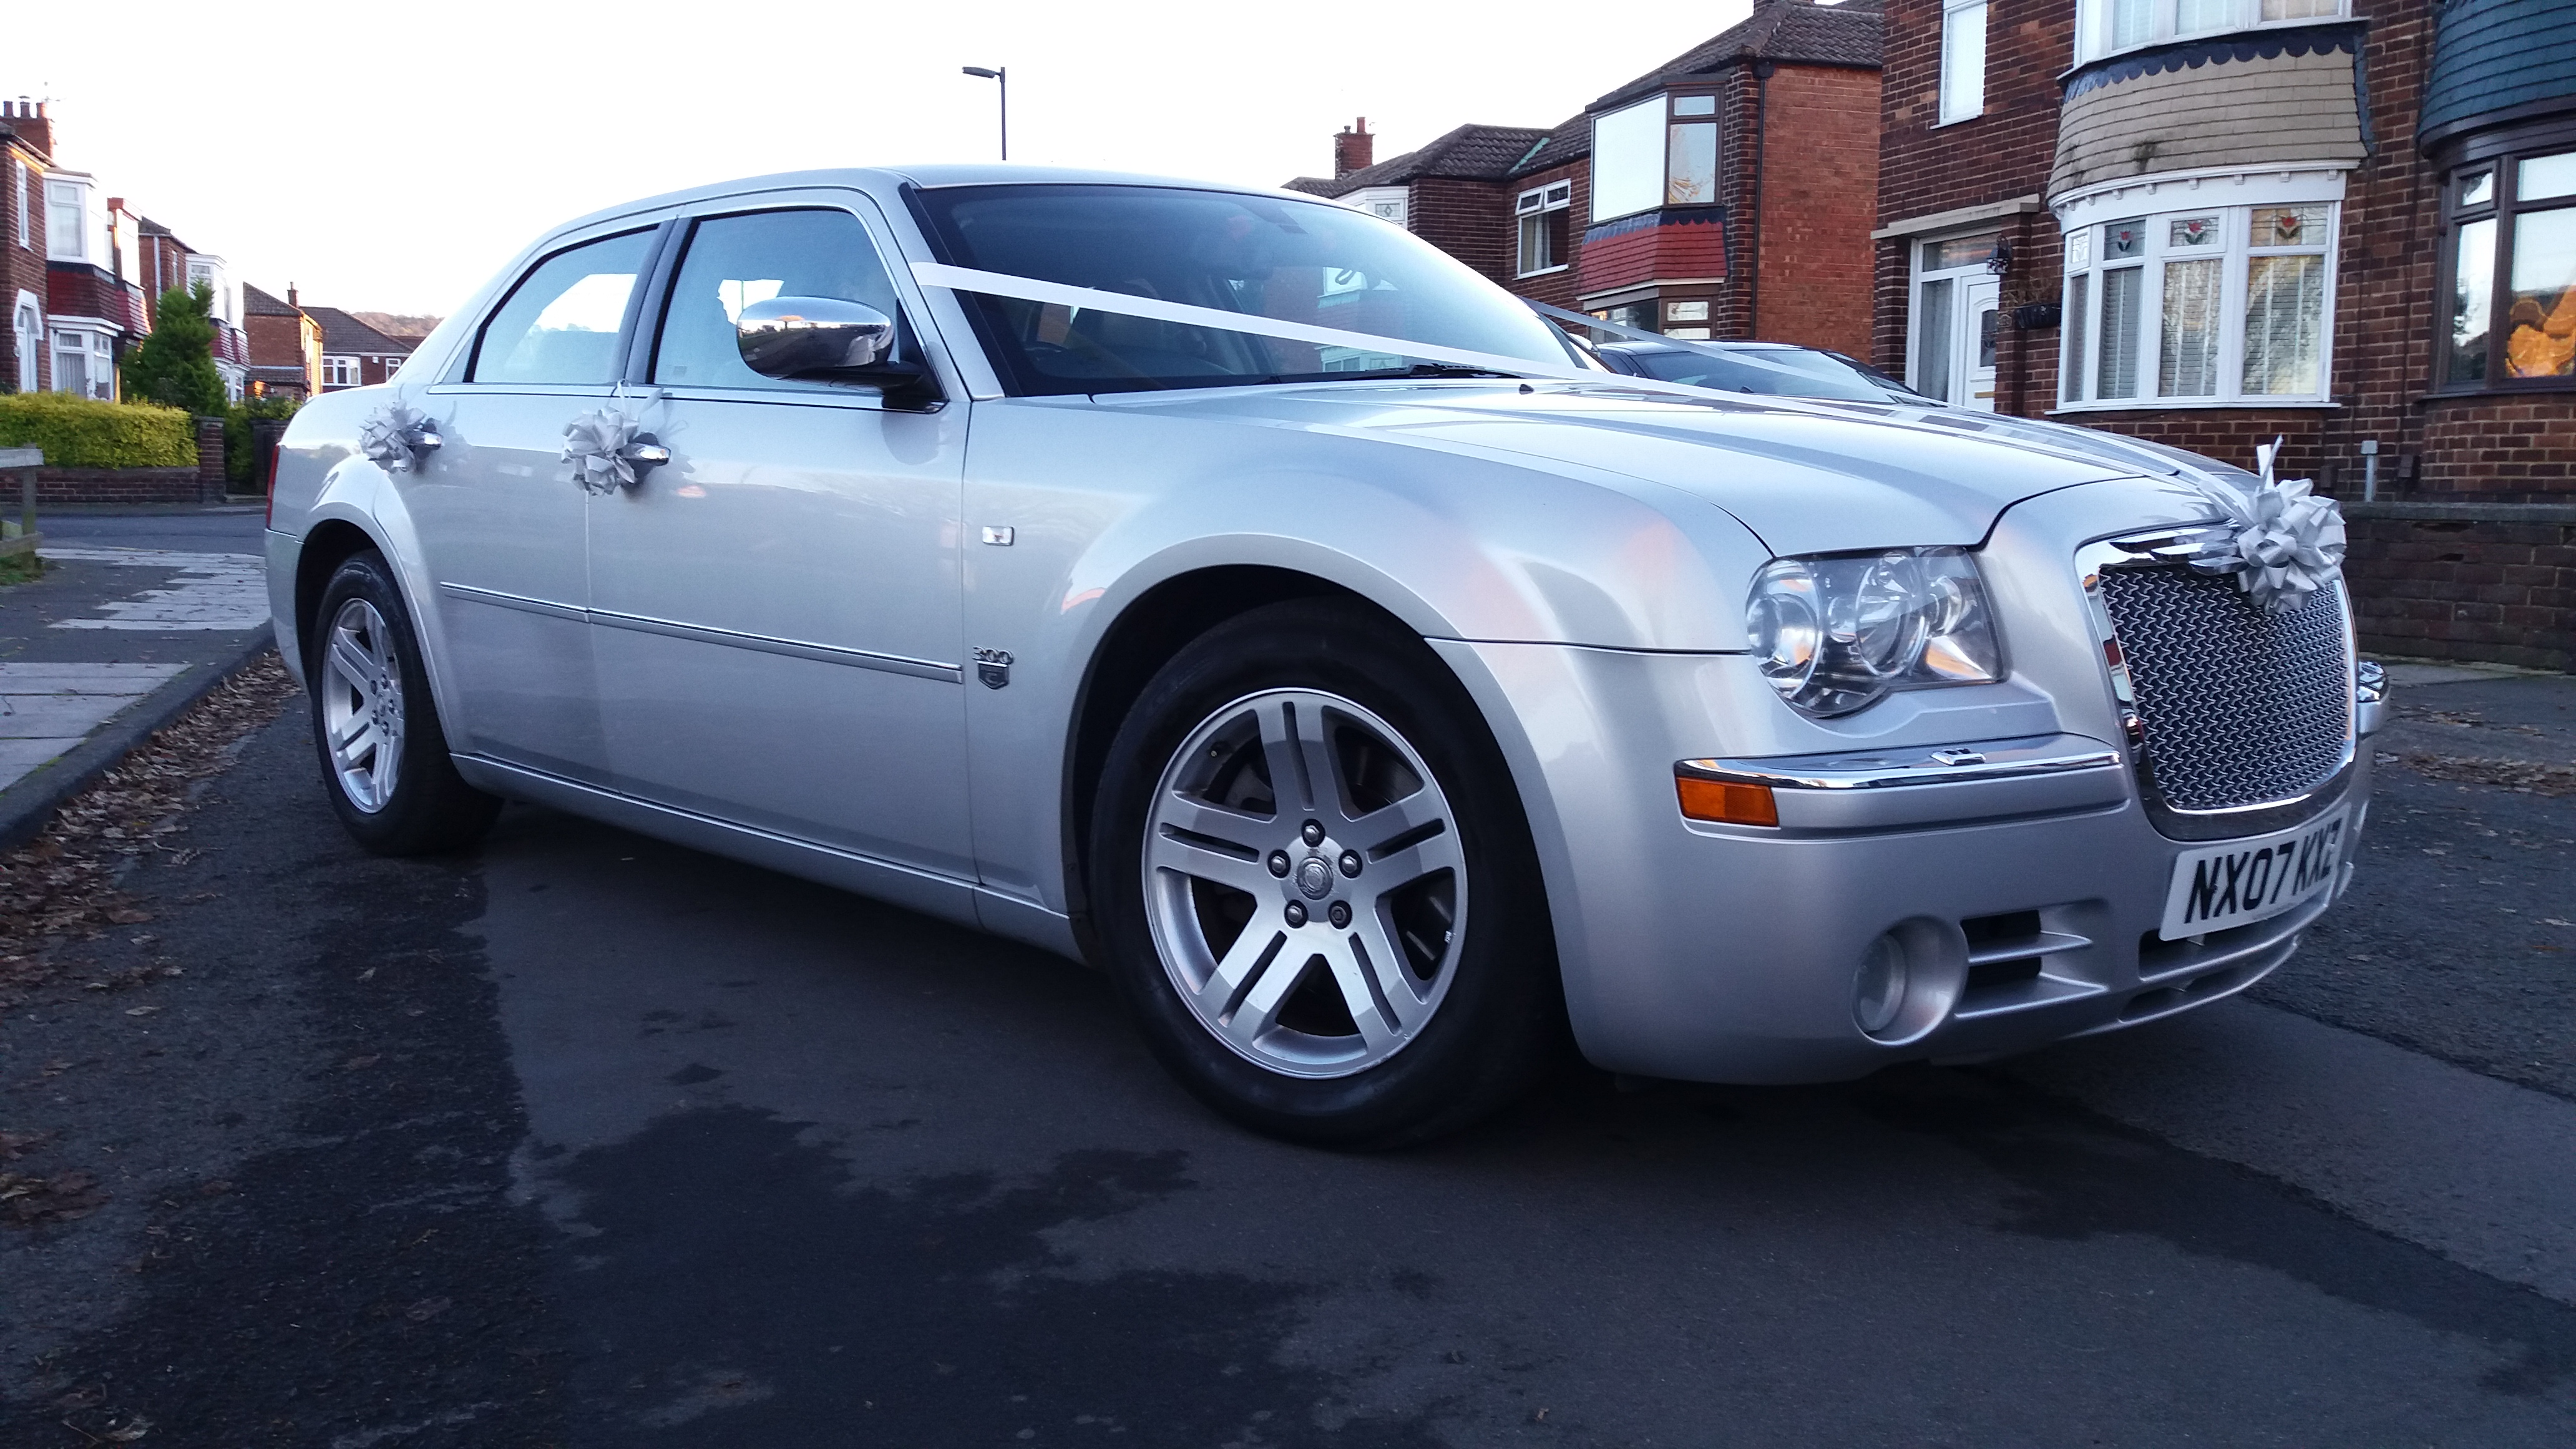 wedding cars and limousines Middlesbrough and the north east. Best service at the best price. Cheap wedding car hire. Prom cars north east.